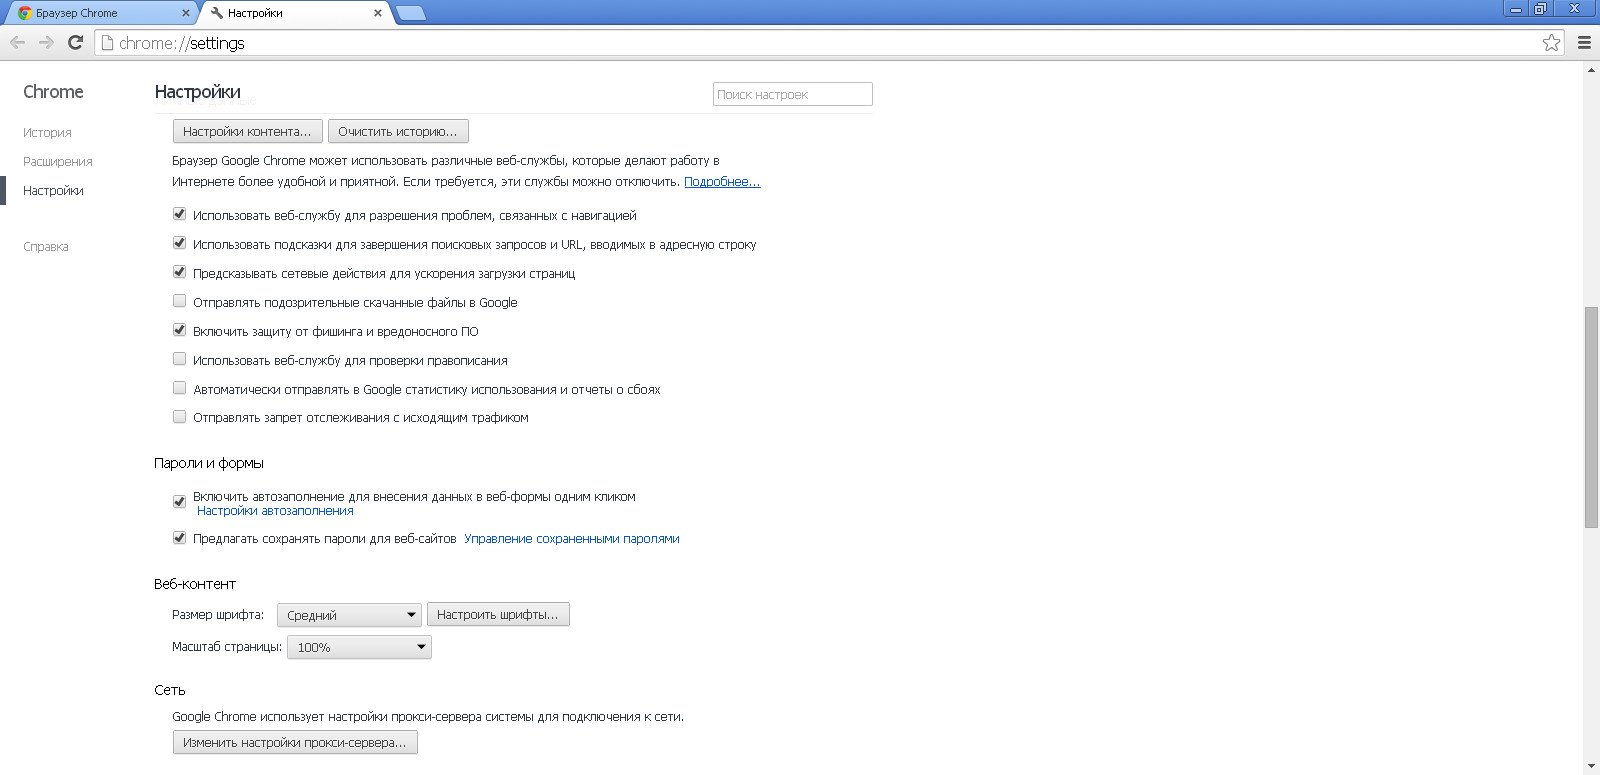 Google Chrome 34.0.1847.131 Stable RePack (& Portable) by D!akov (2014) MULTi / Русский